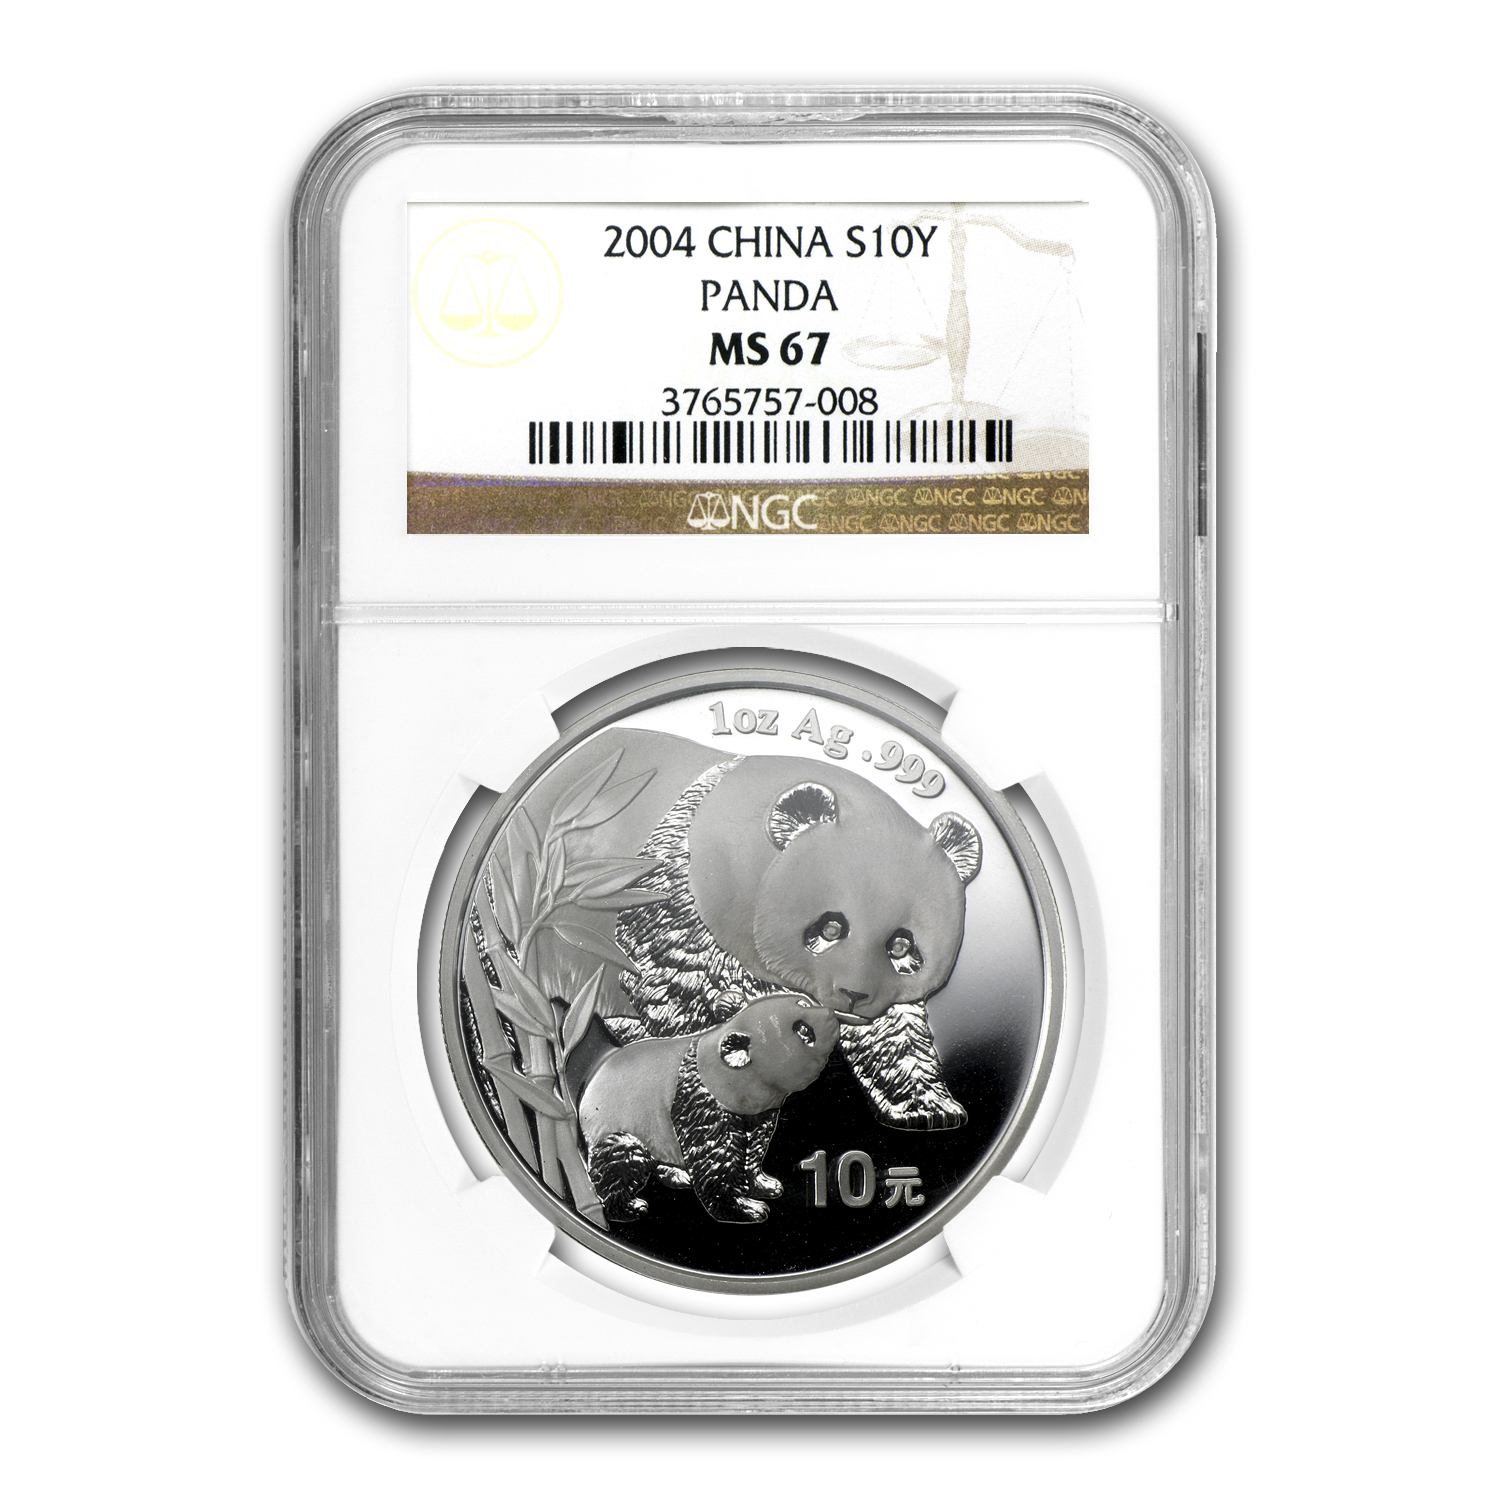 2004 1 oz Silver Chinese Panda MS-67 NGC